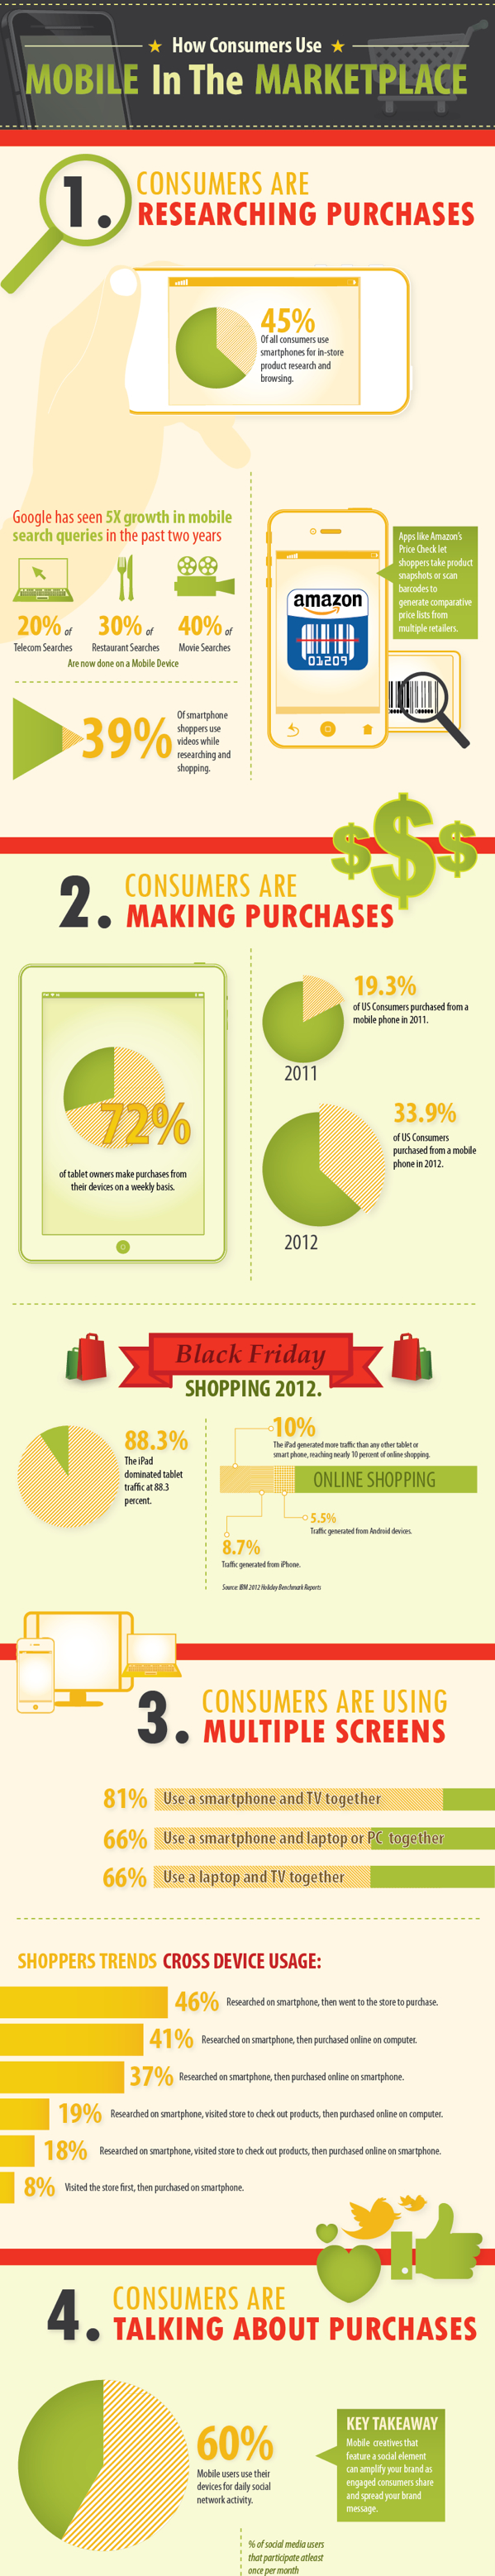 infographic-mobile-usage-consumers